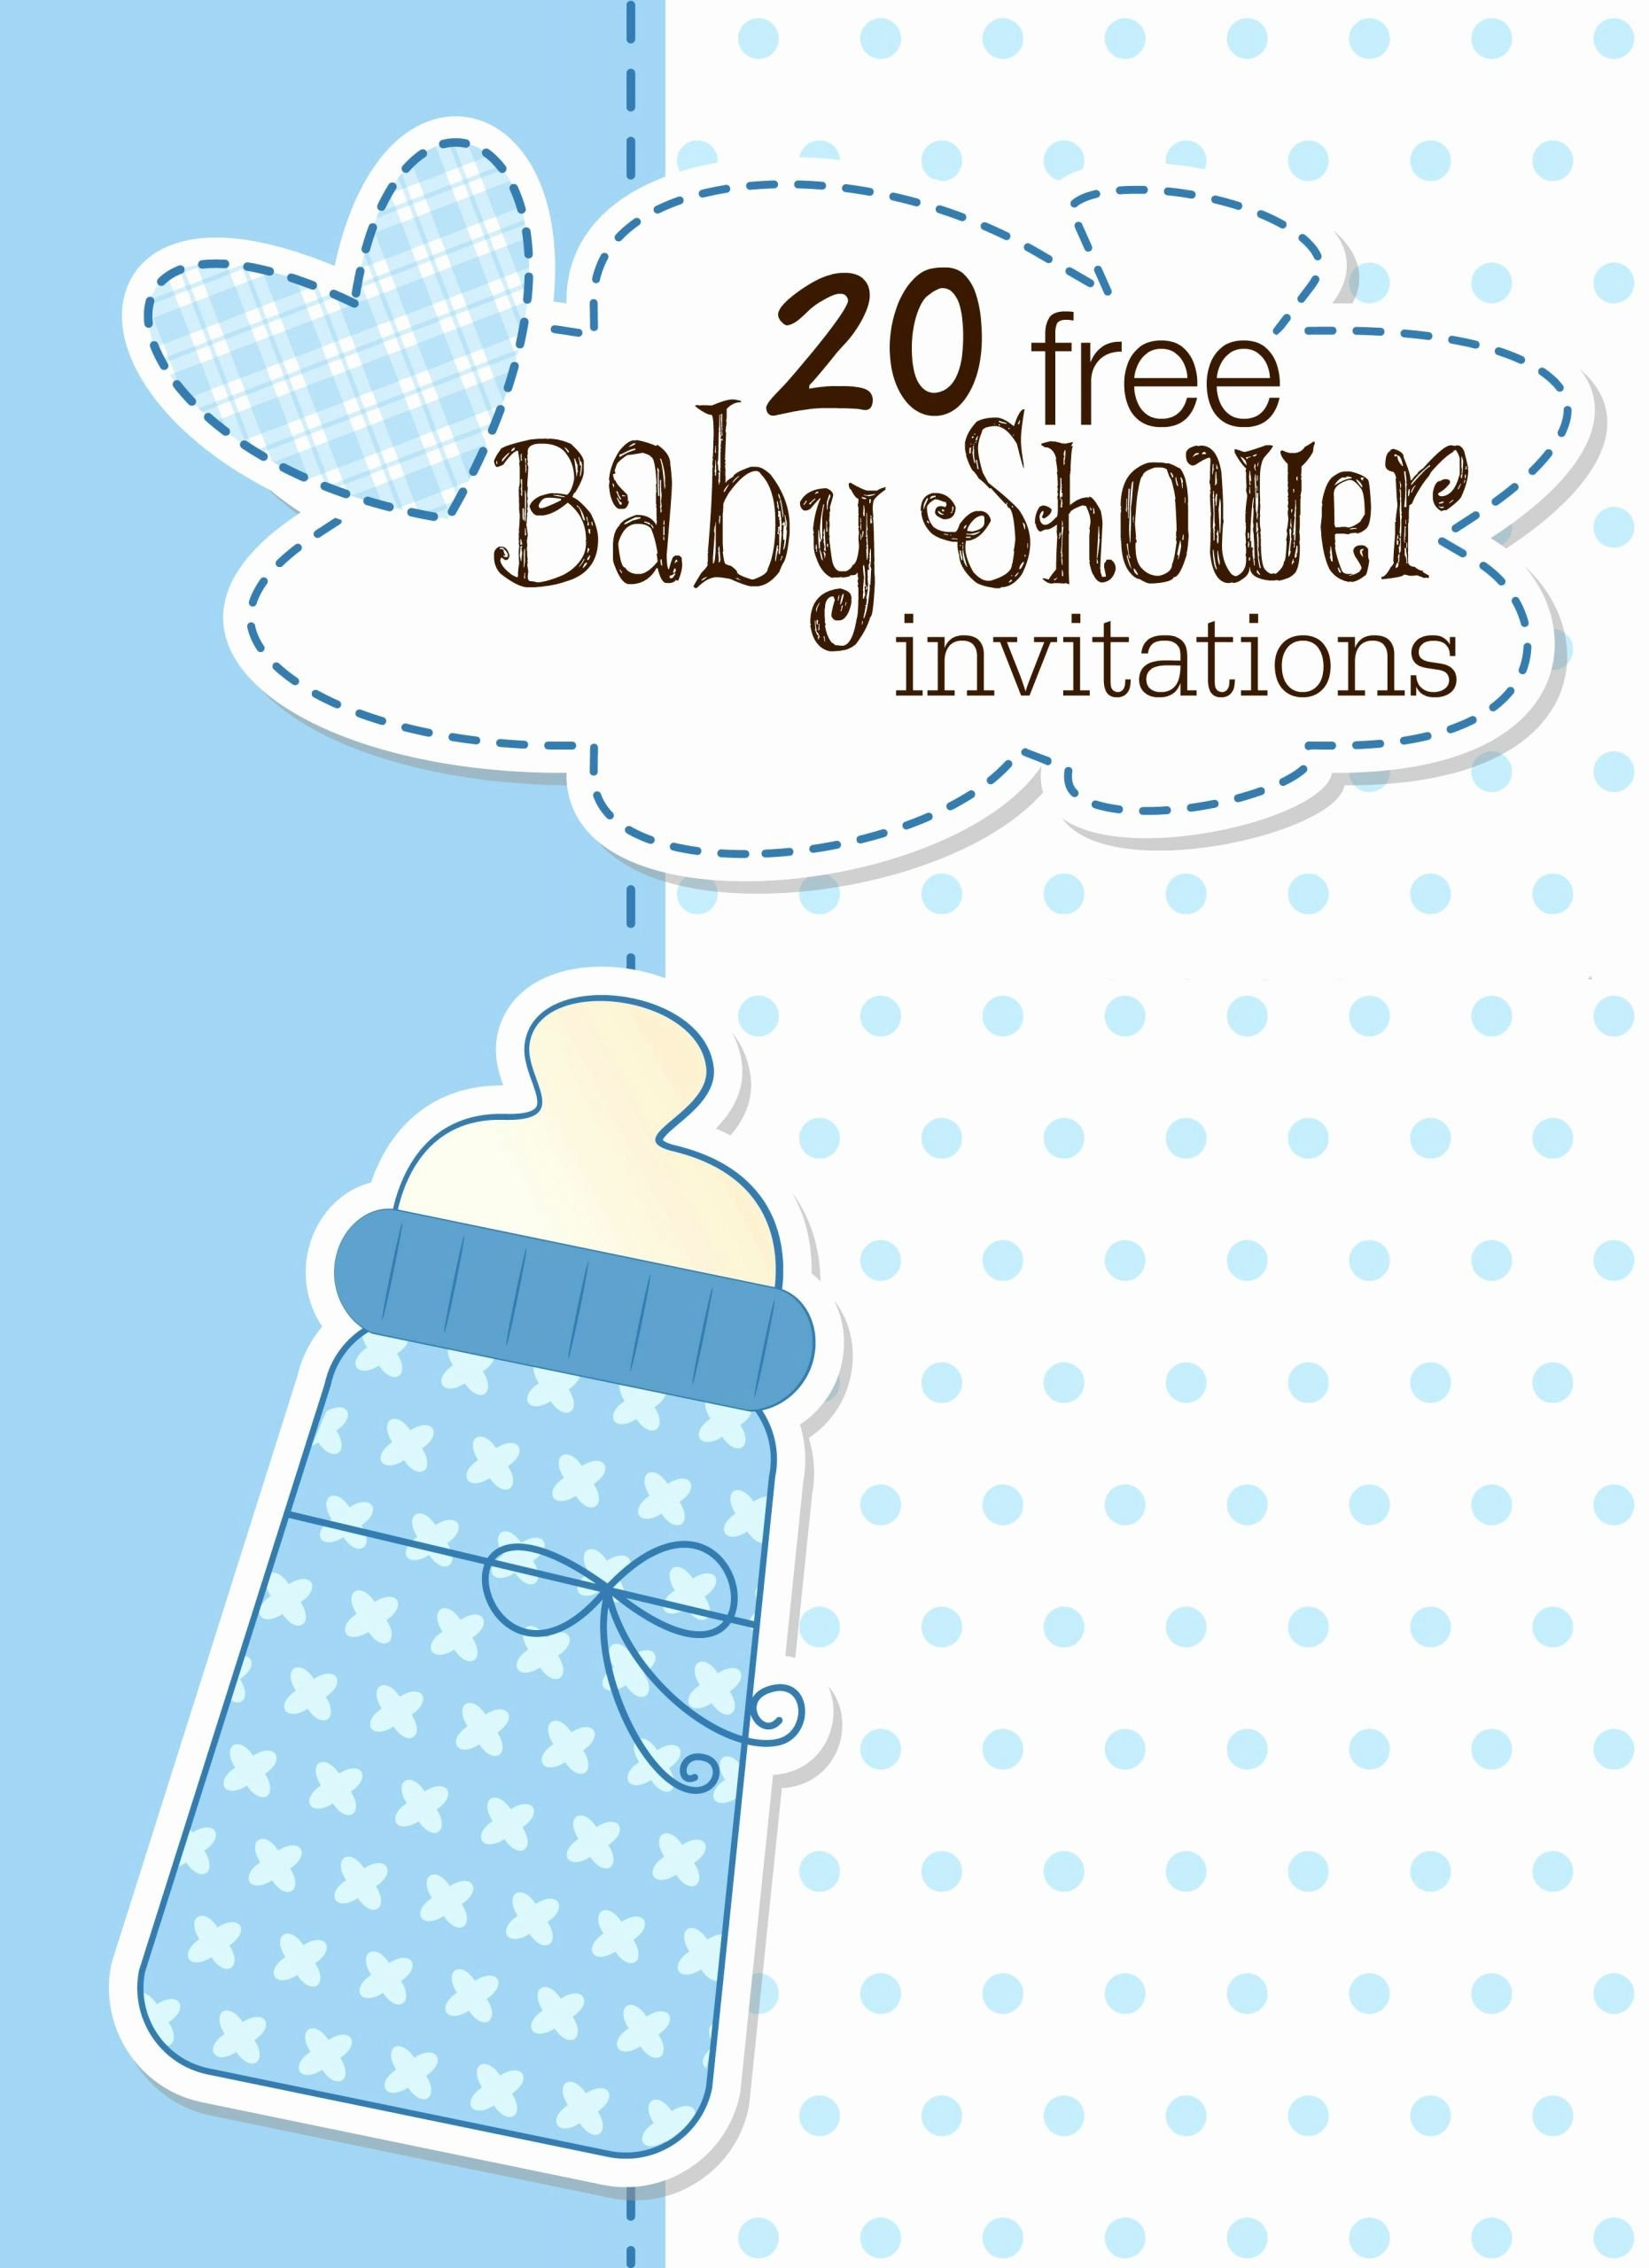 Free Shower Invitation Template Luxury Free Baby Shower Invitation Templates